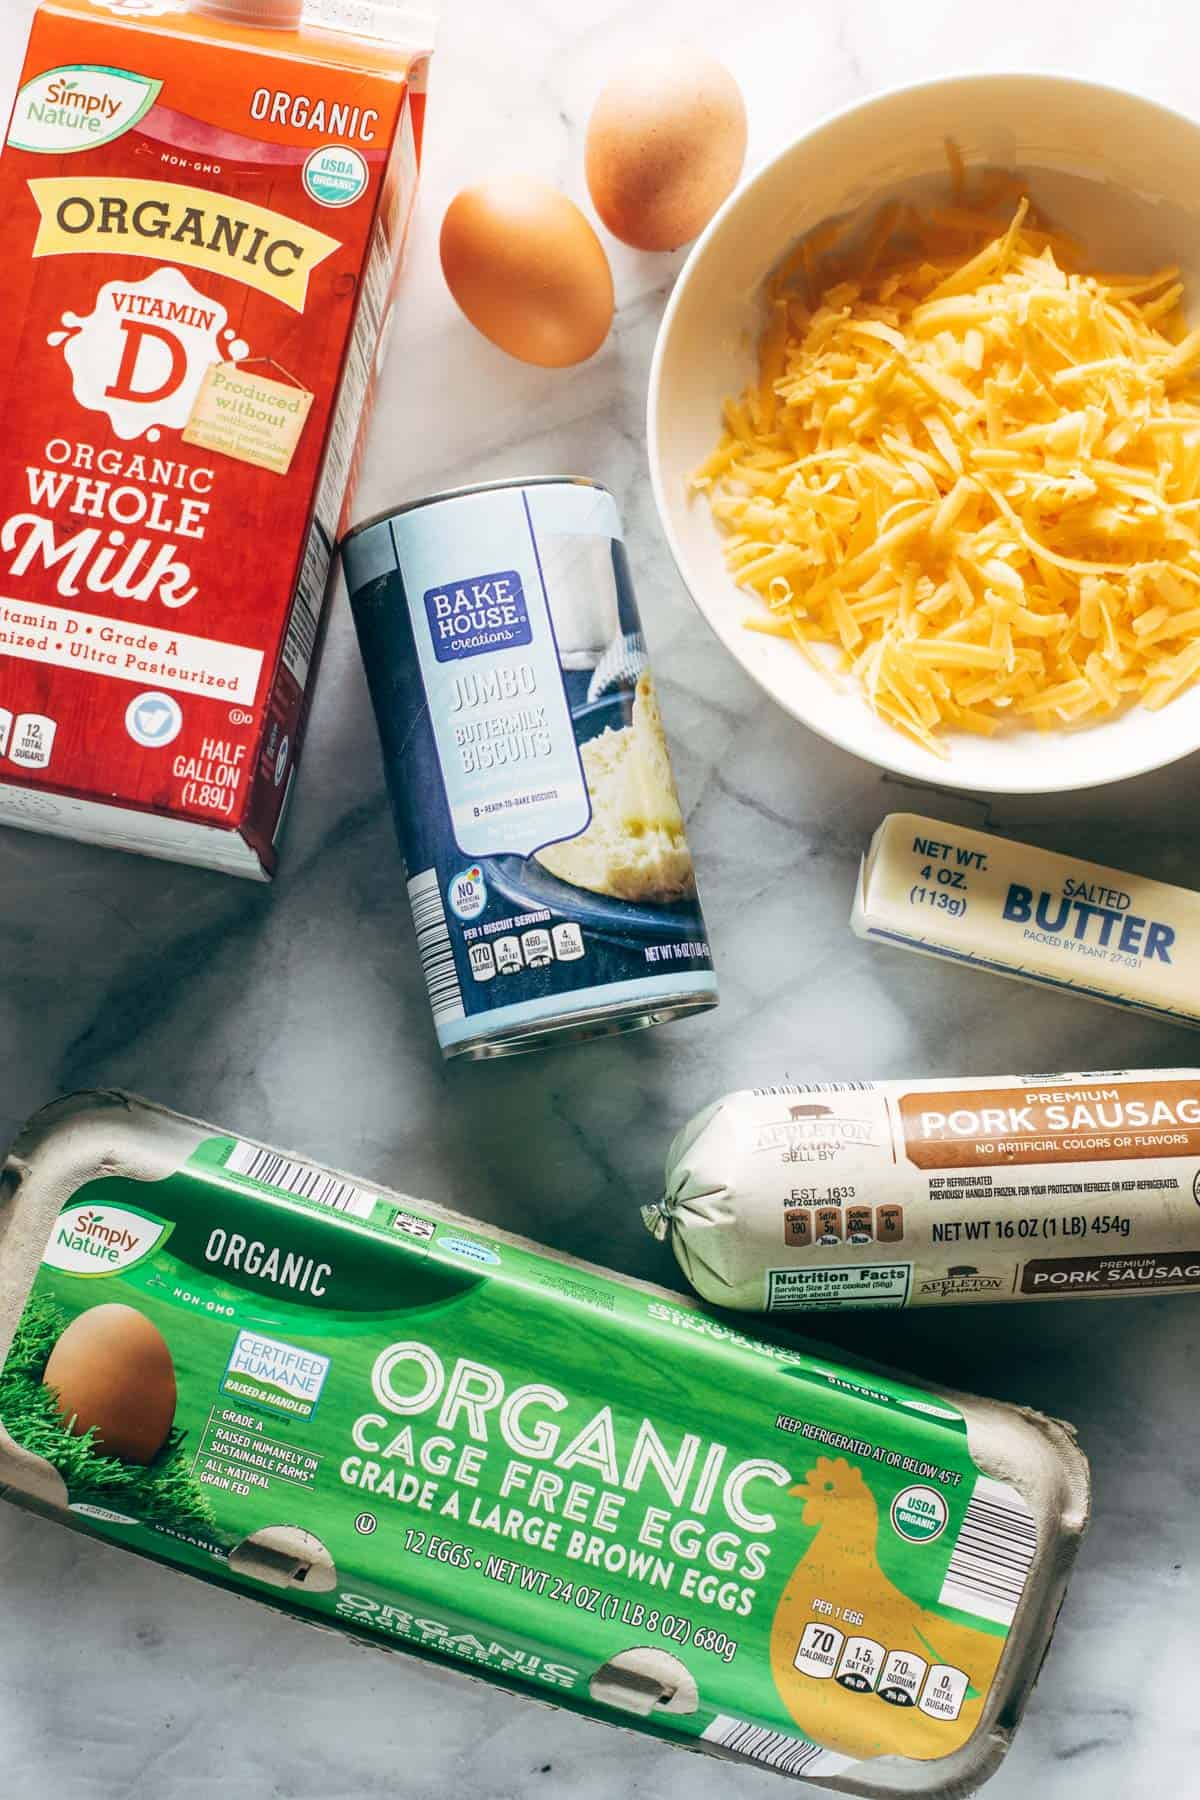 ALDI ingredients for biscuits and gravy egg bake.